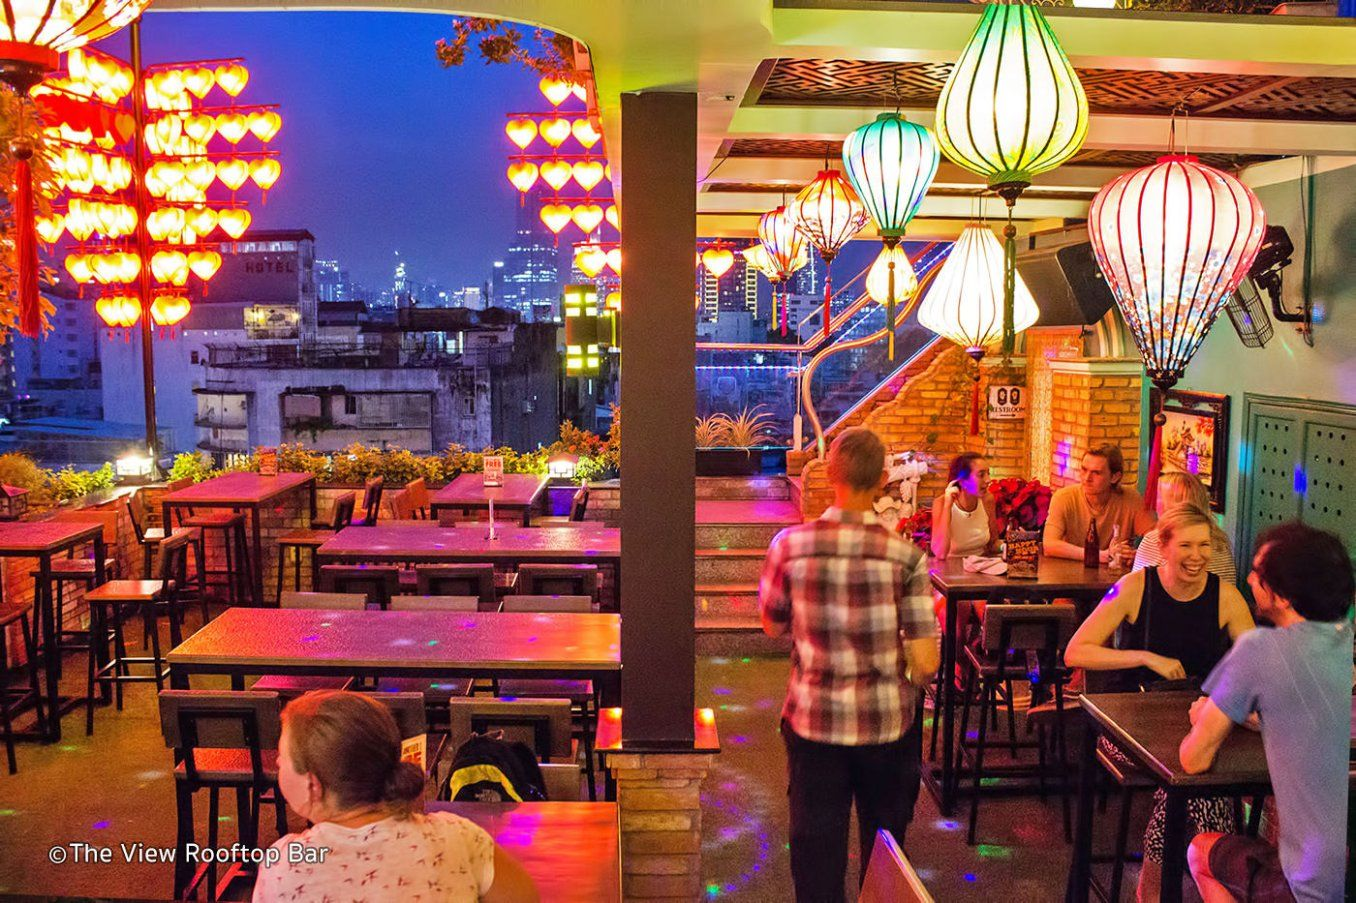 When It Comes To Nightlife In Ho Chi Minh City There S No Better Place To Party In Style Than A Sleek Rooftop B Best Rooftop Bars Rooftop Bar Ho Chi Minh